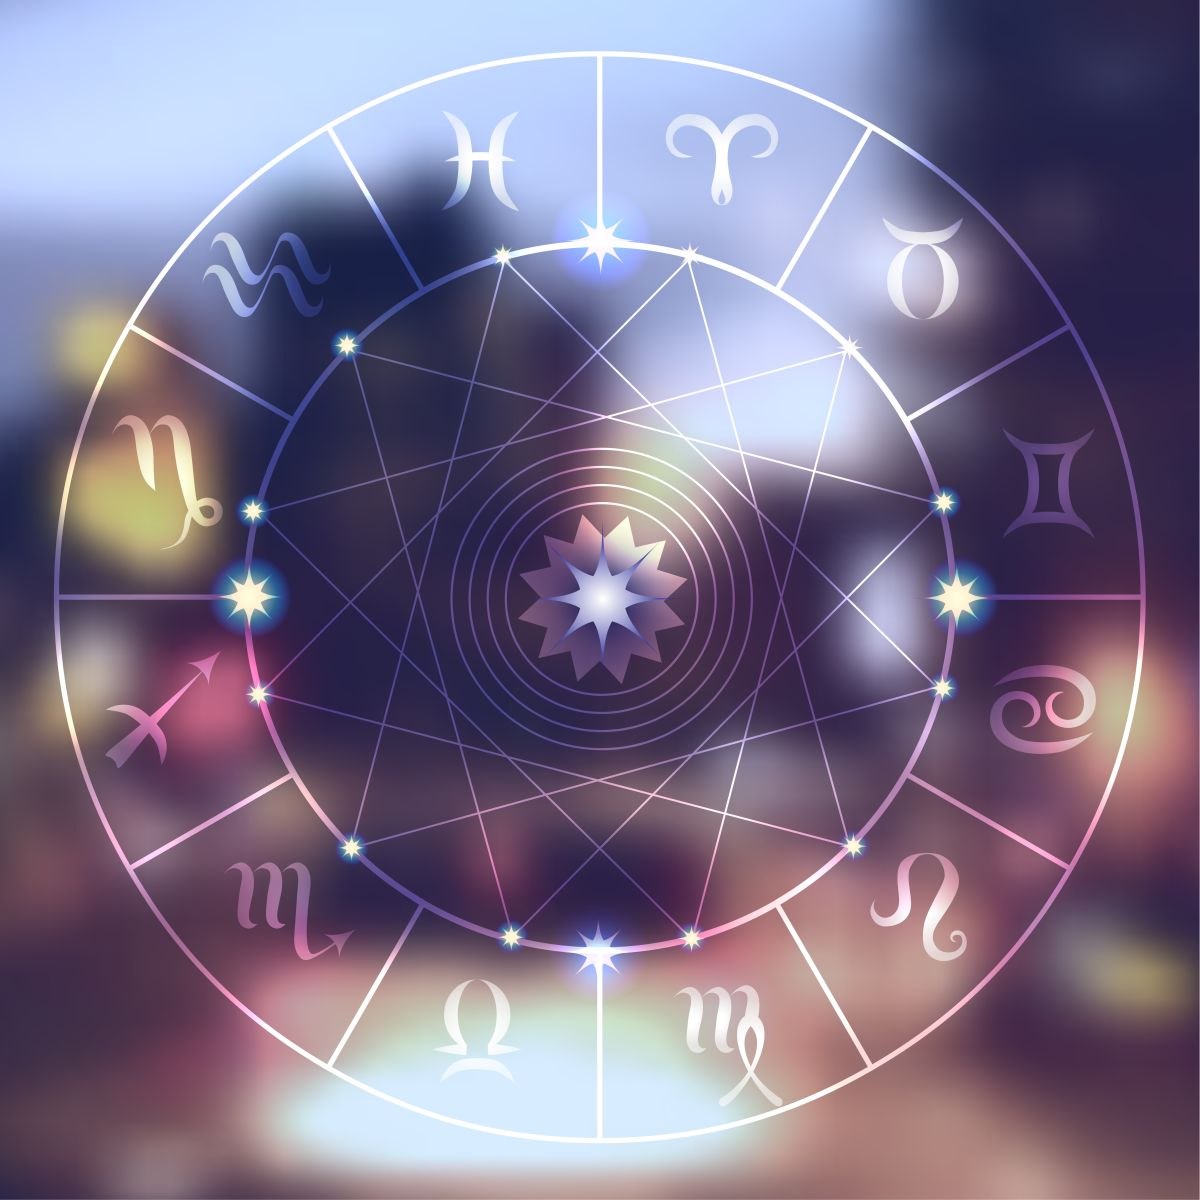 Daily Horoscope June 2, 2019! The Sunday of the three big challenges